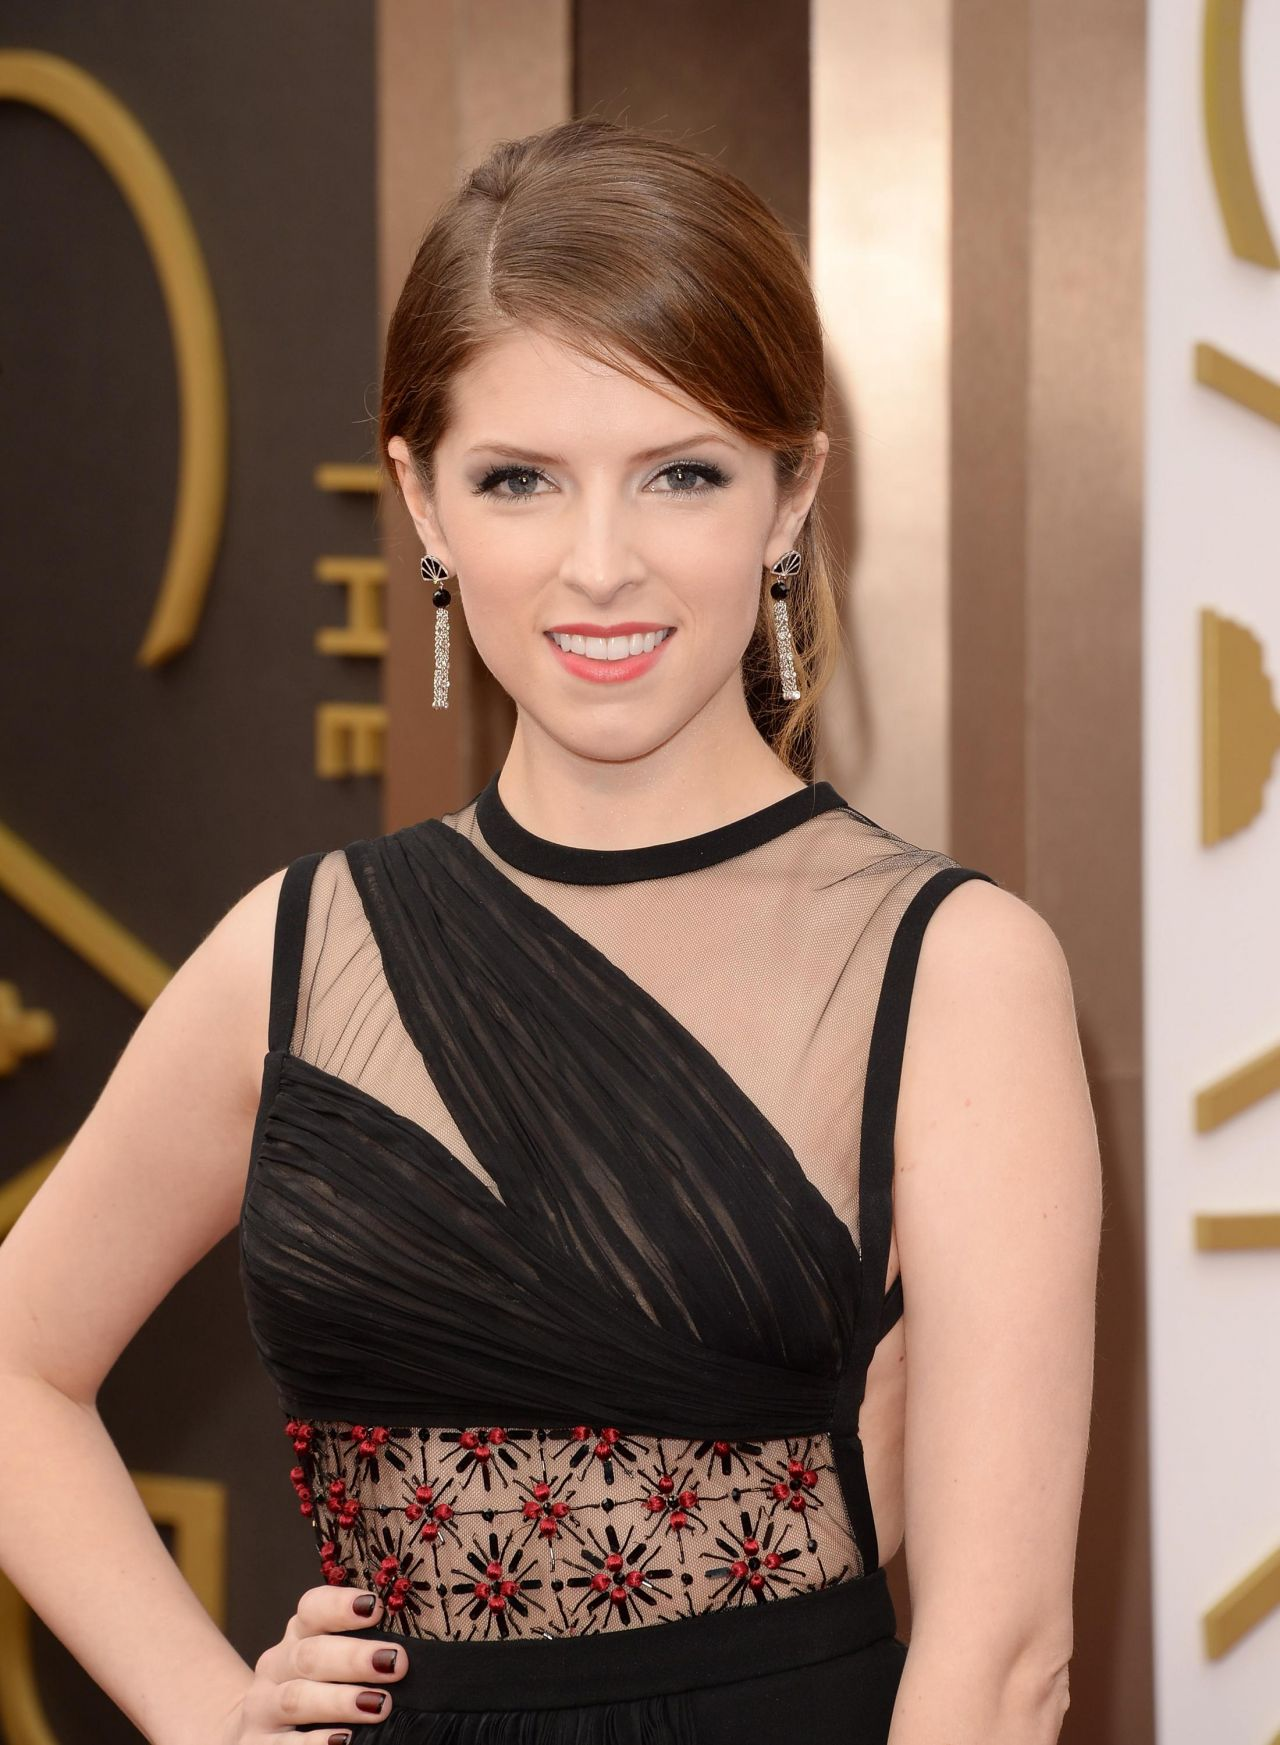 Anna Kendrick Wearing J.Mendel Dress at 2014 OSCARS